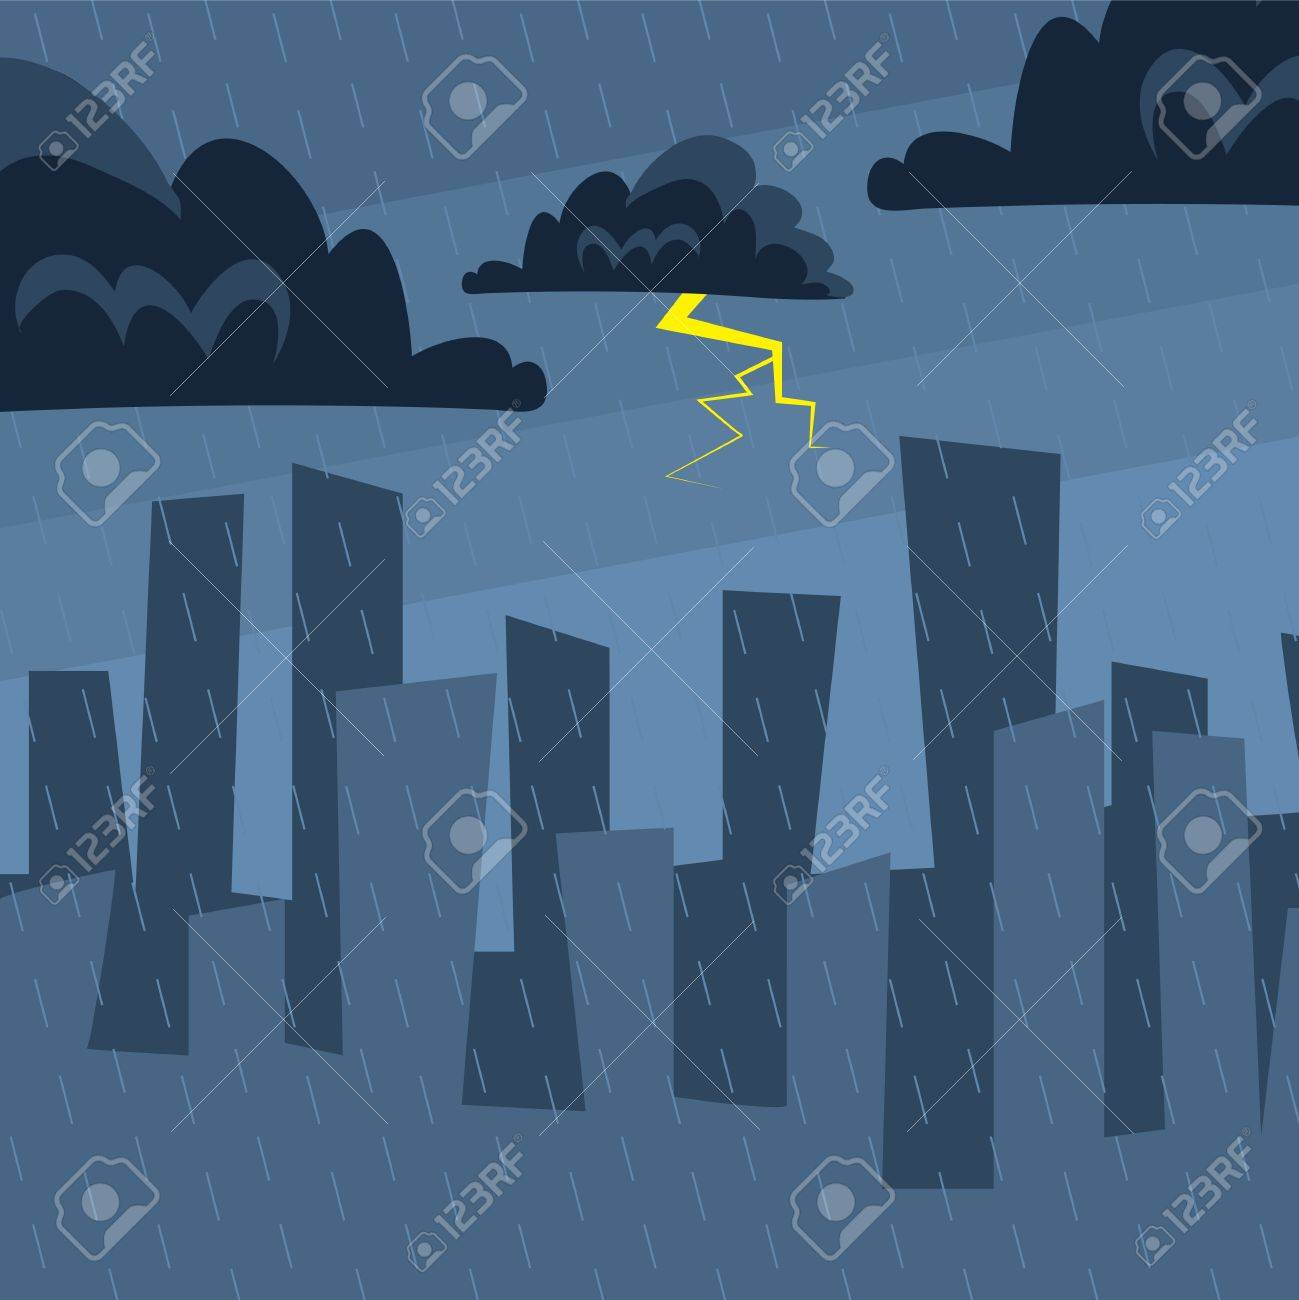 Nighttime city skyline in the rain Stock Vector - 11785774